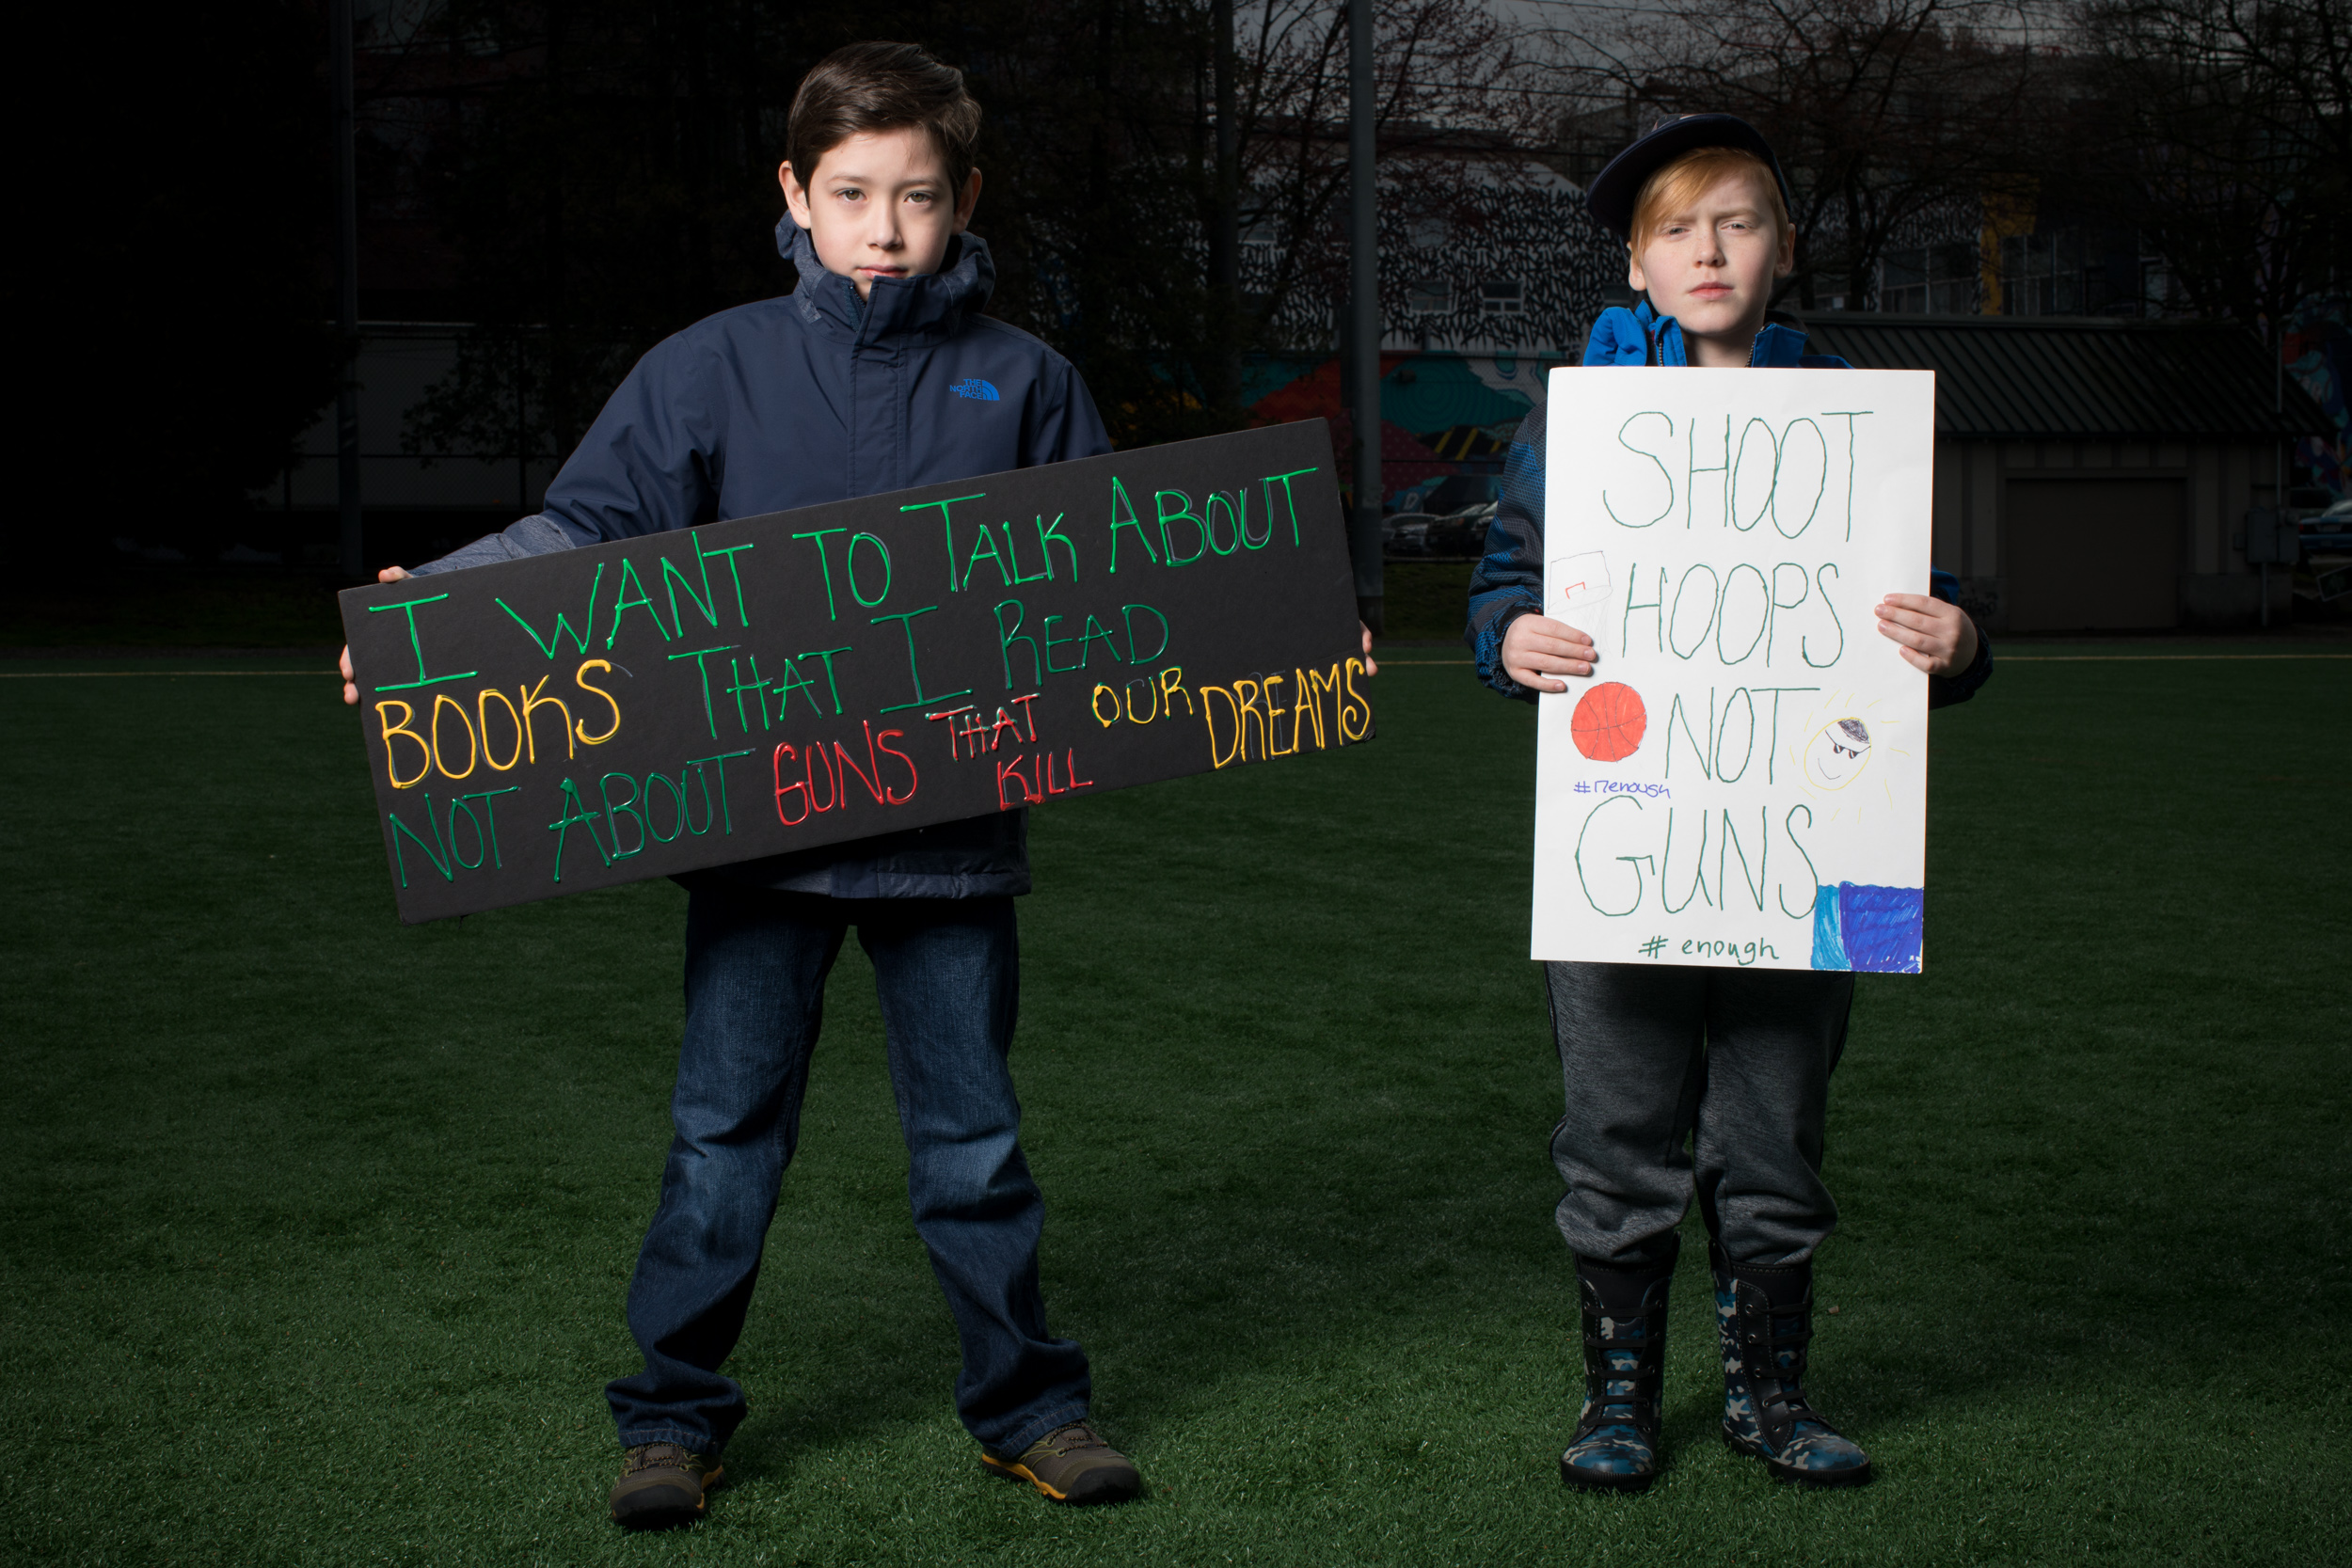 Diego Villegas, 8, and Kai Mumma, 8, both of Bellevue